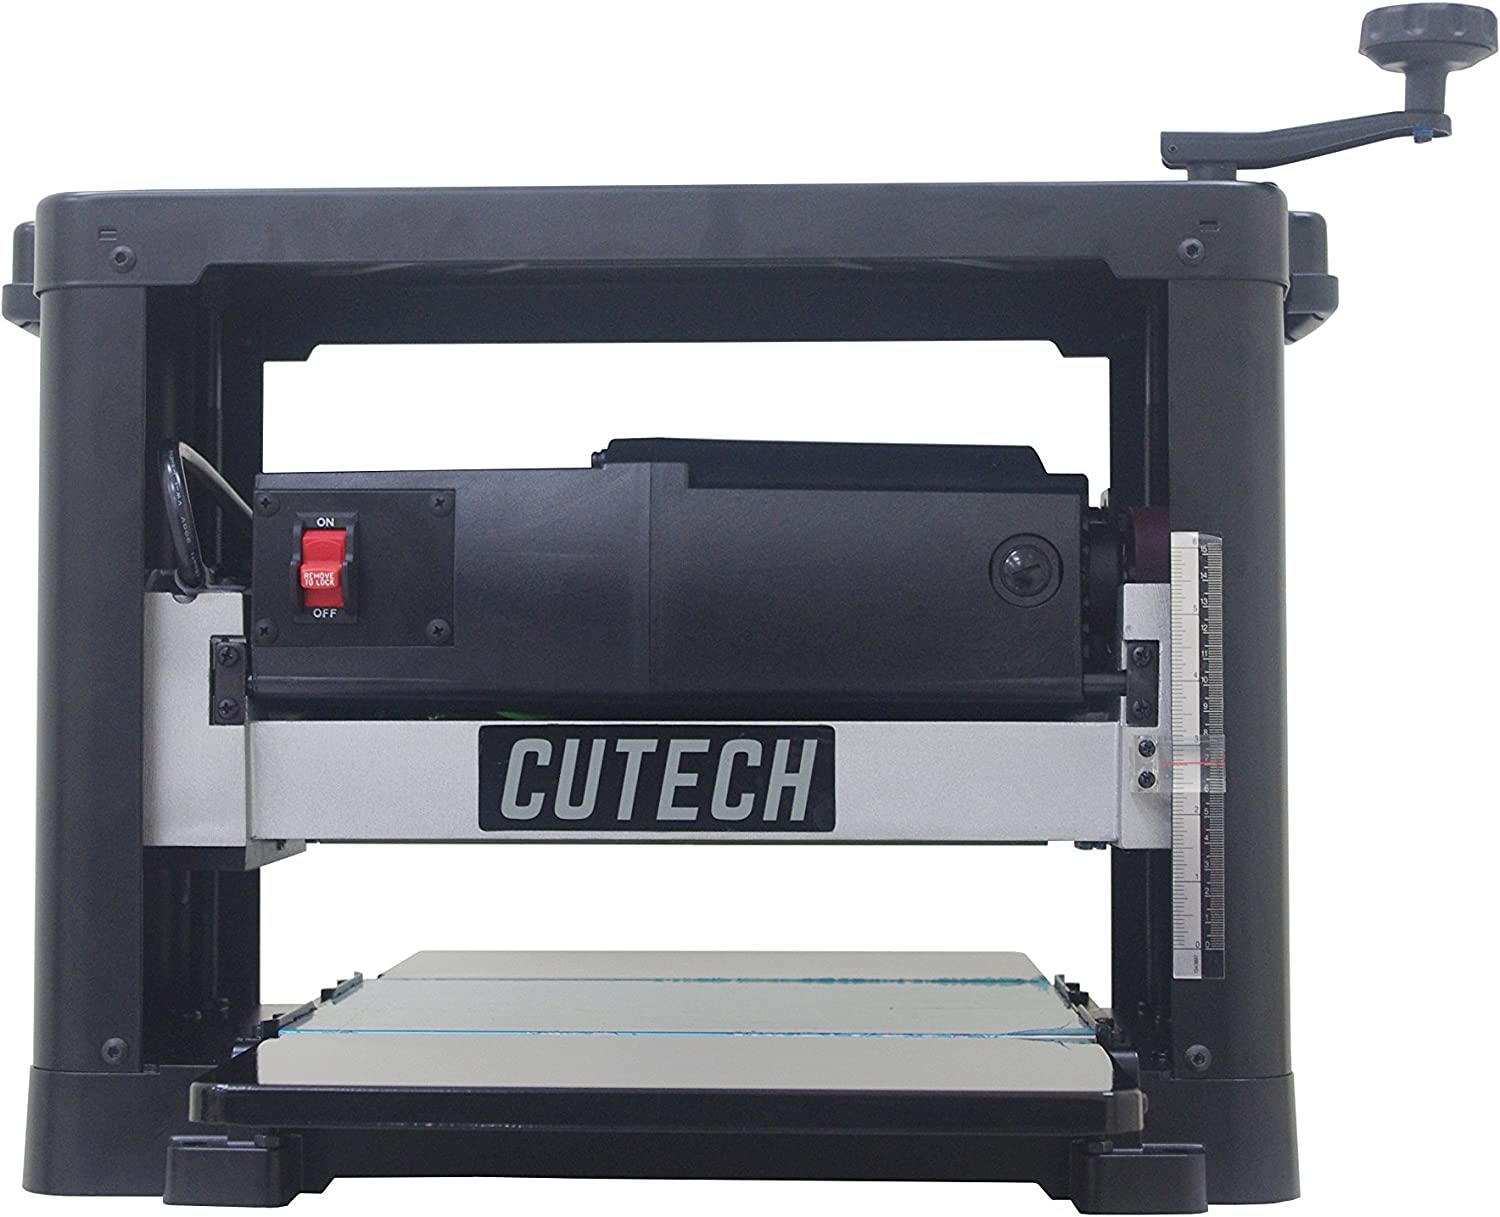 Cutech 40700-CT 12 1 2 Straight Knife Planer – Budget Model